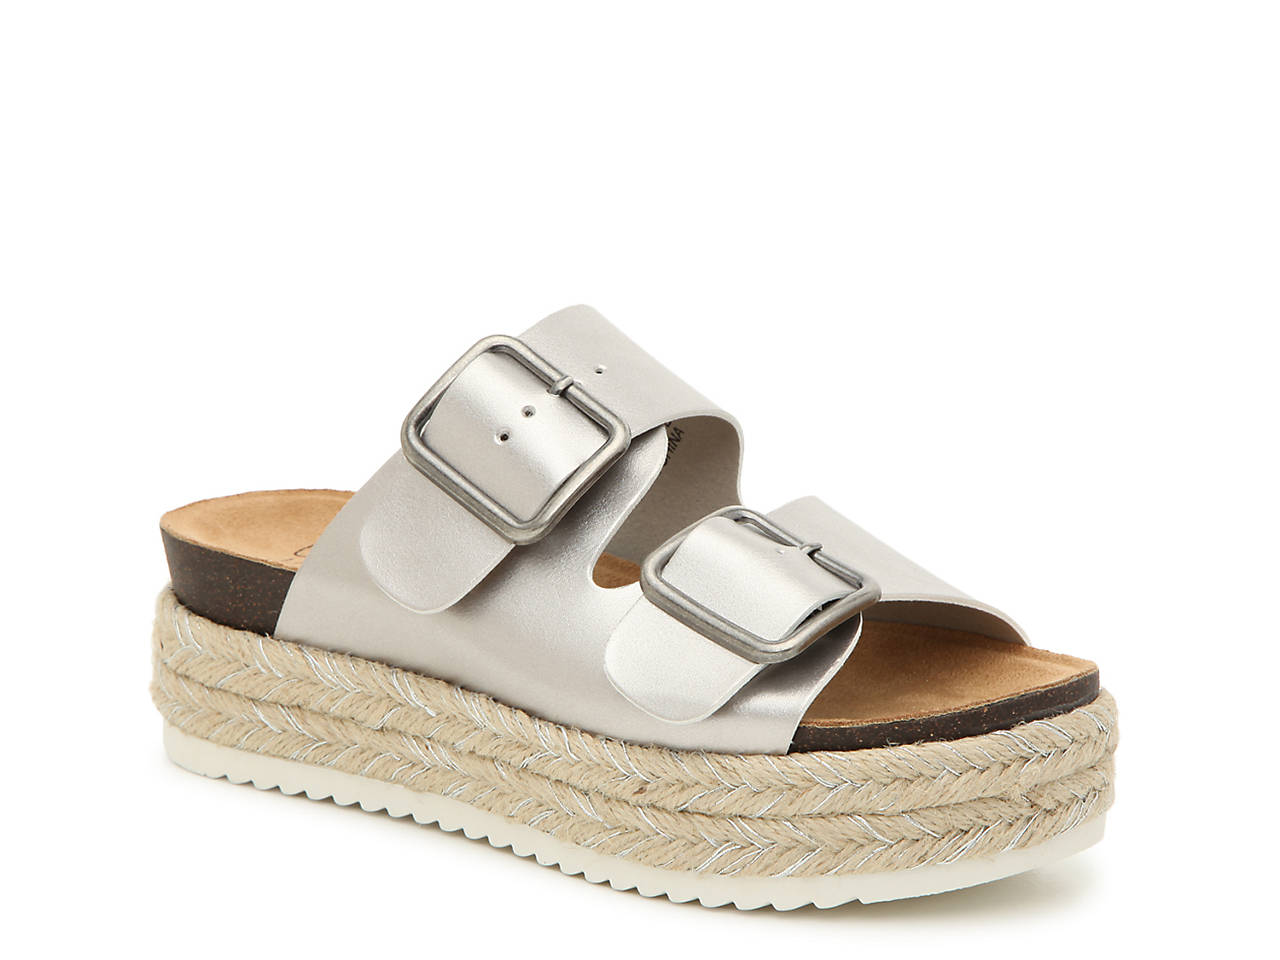 f44aee4506 Crown Vintage Polly Espadrille Platform Sandal Women's Shoes | DSW